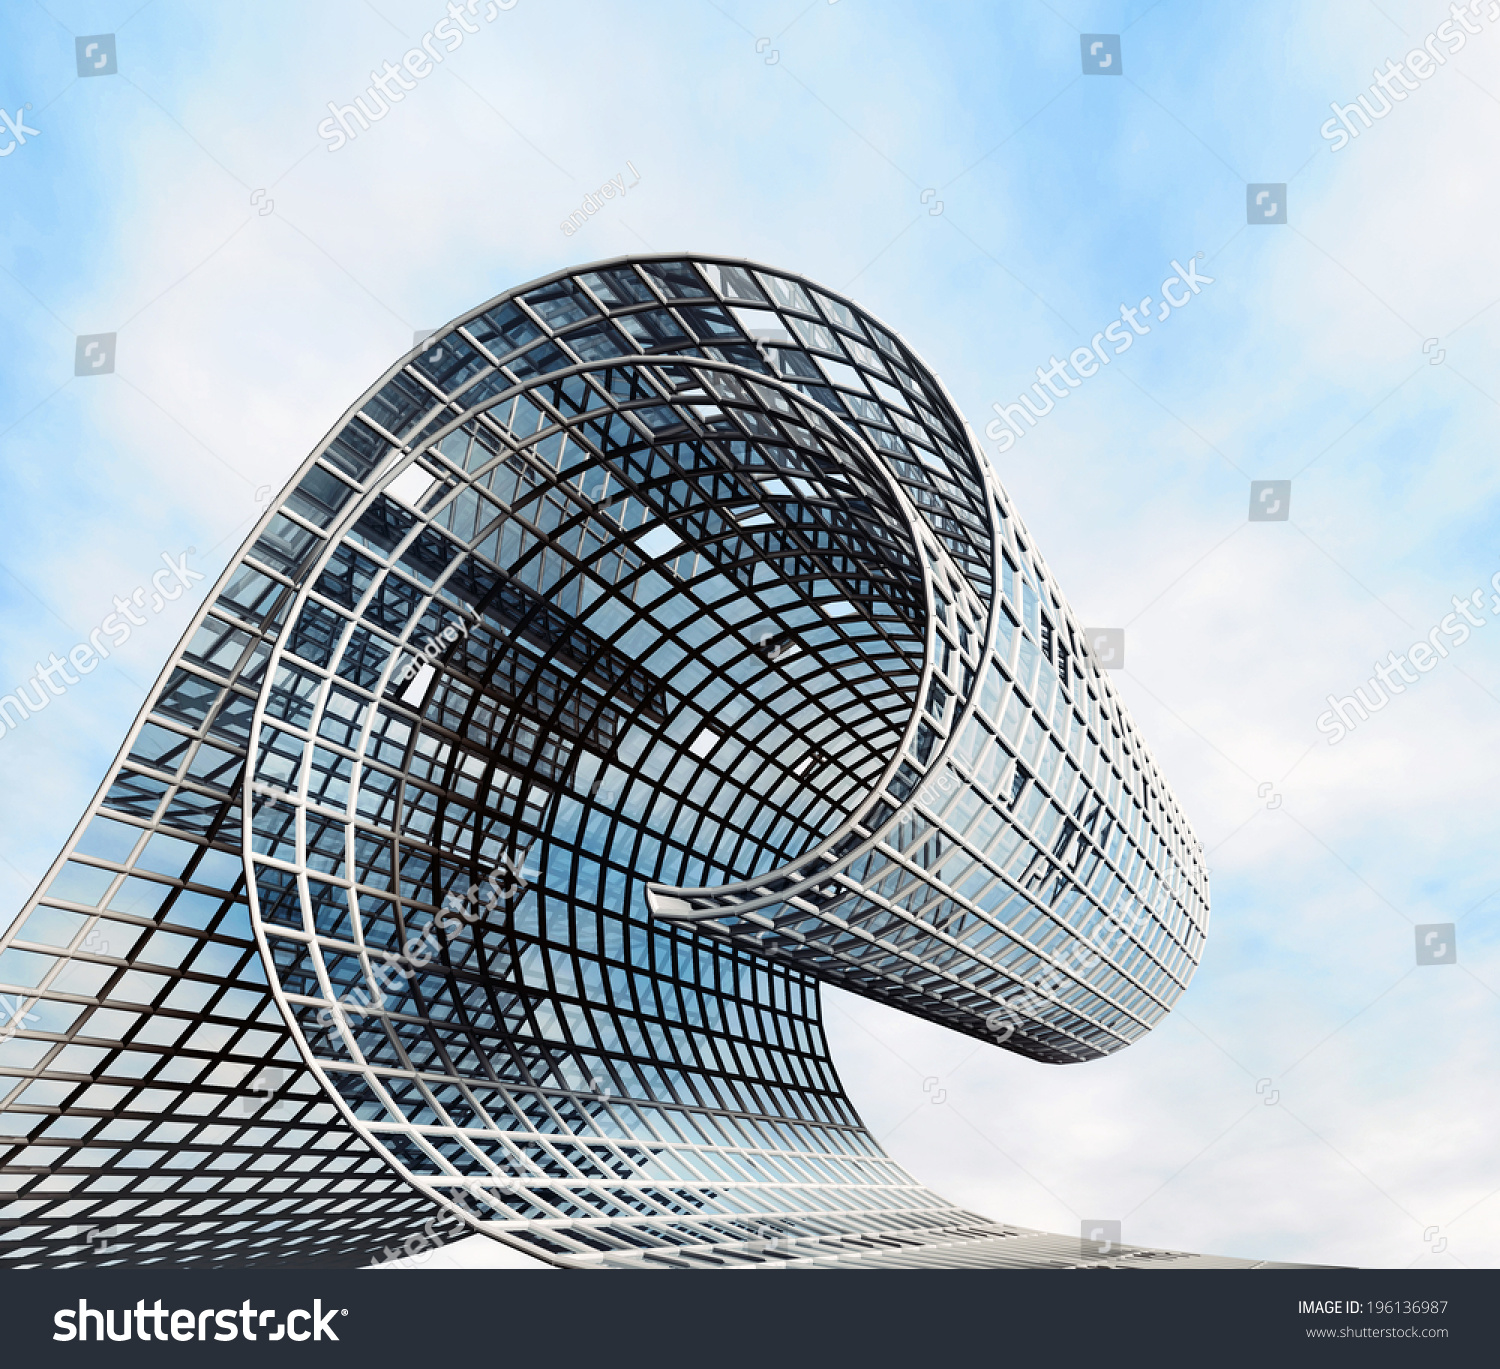 Futuristik Design Royalty Free Stock Illustration Of Futuristic Design Form Wave